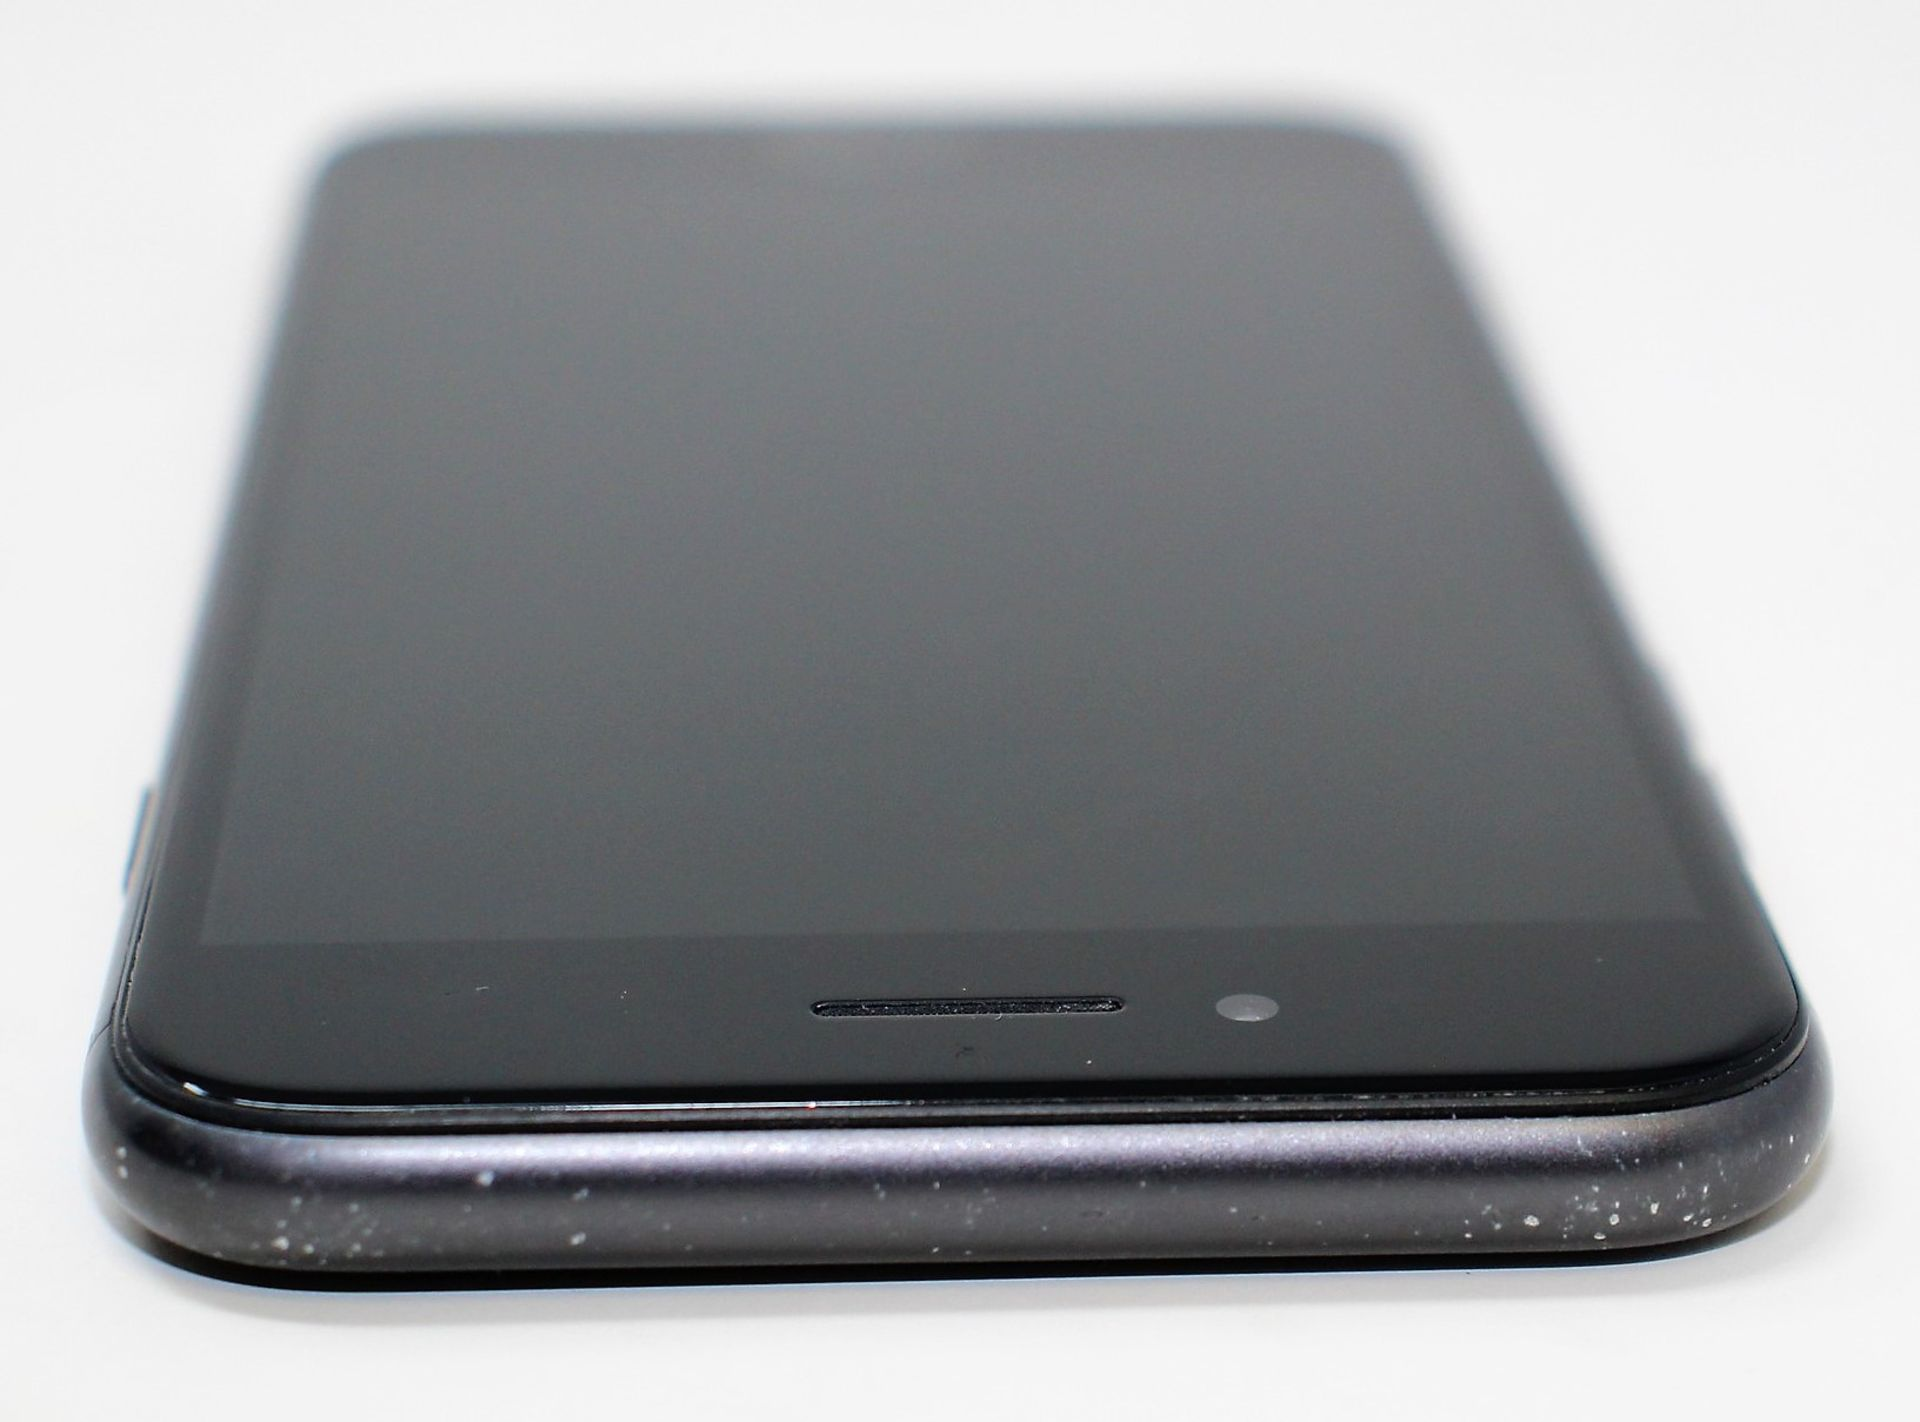 A pre-owned Apple iPhone 8 (AT&T/T-Mobile/Global/A1905) 64GB in Space Grey (iCloud activation clear, - Image 5 of 7